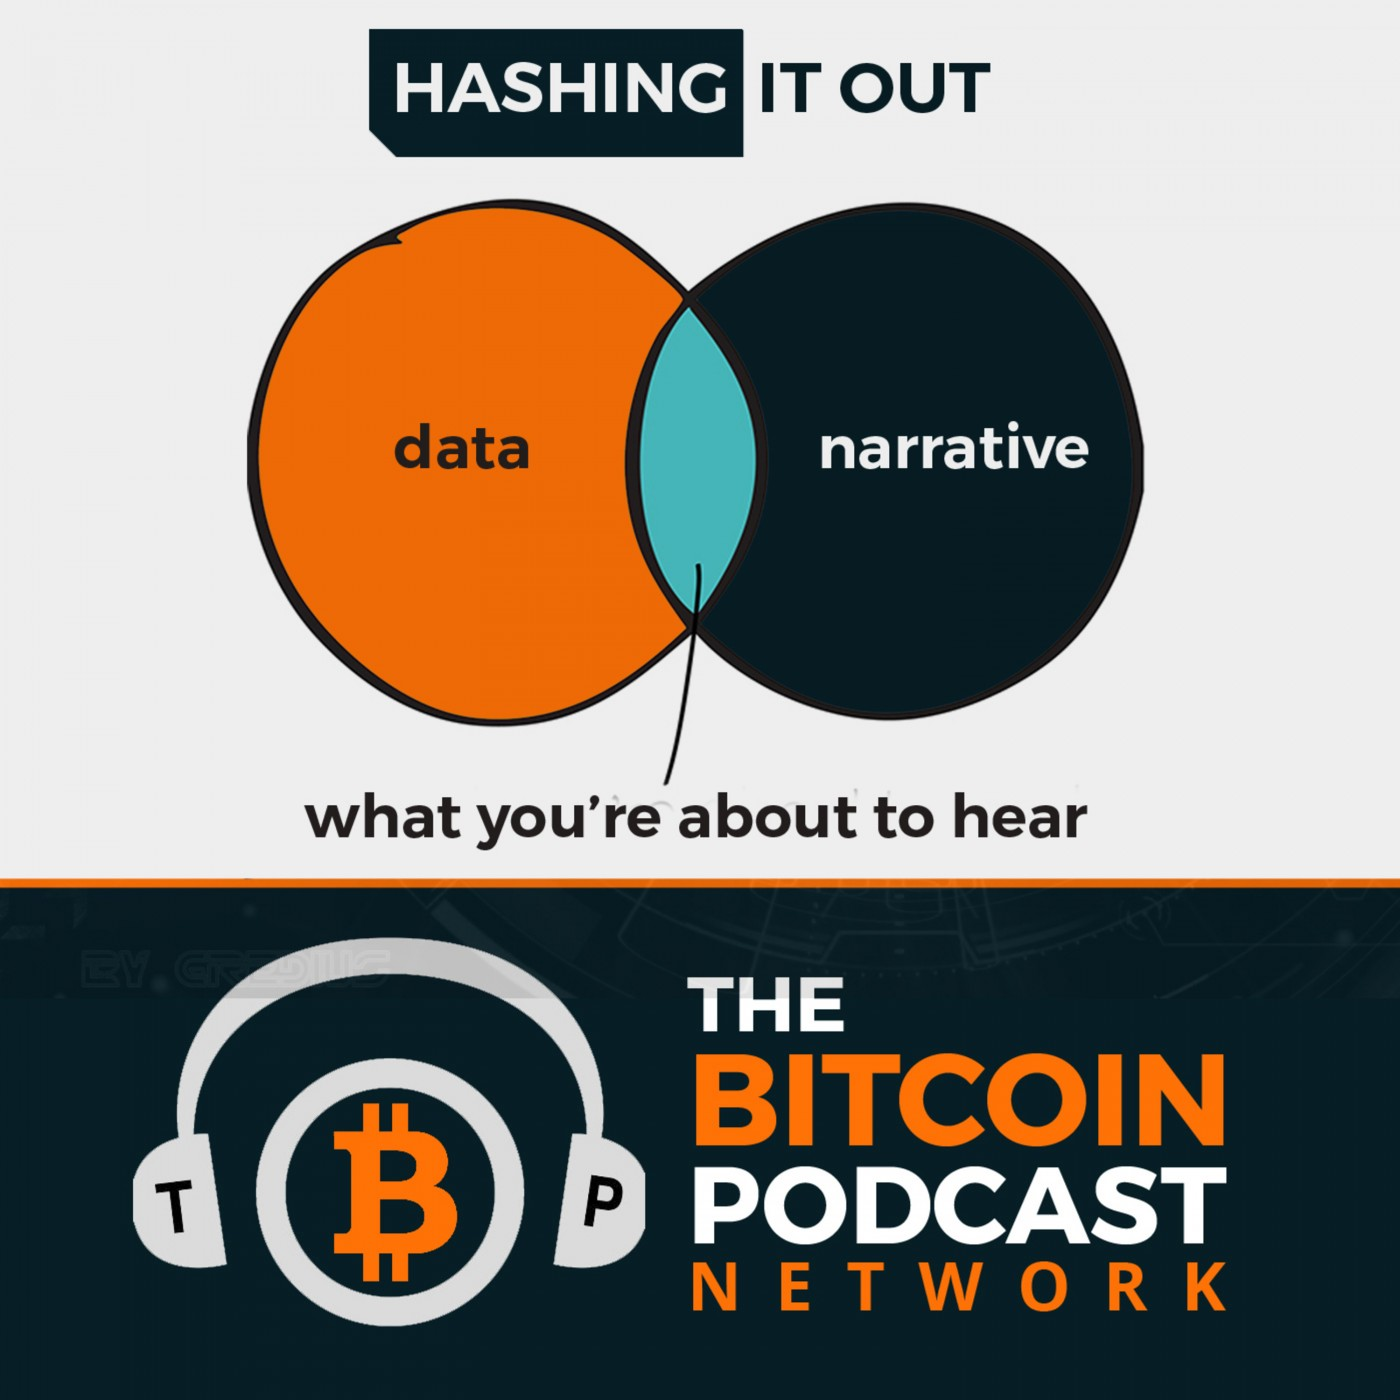 Hashing It Out #4: William O'Beirne